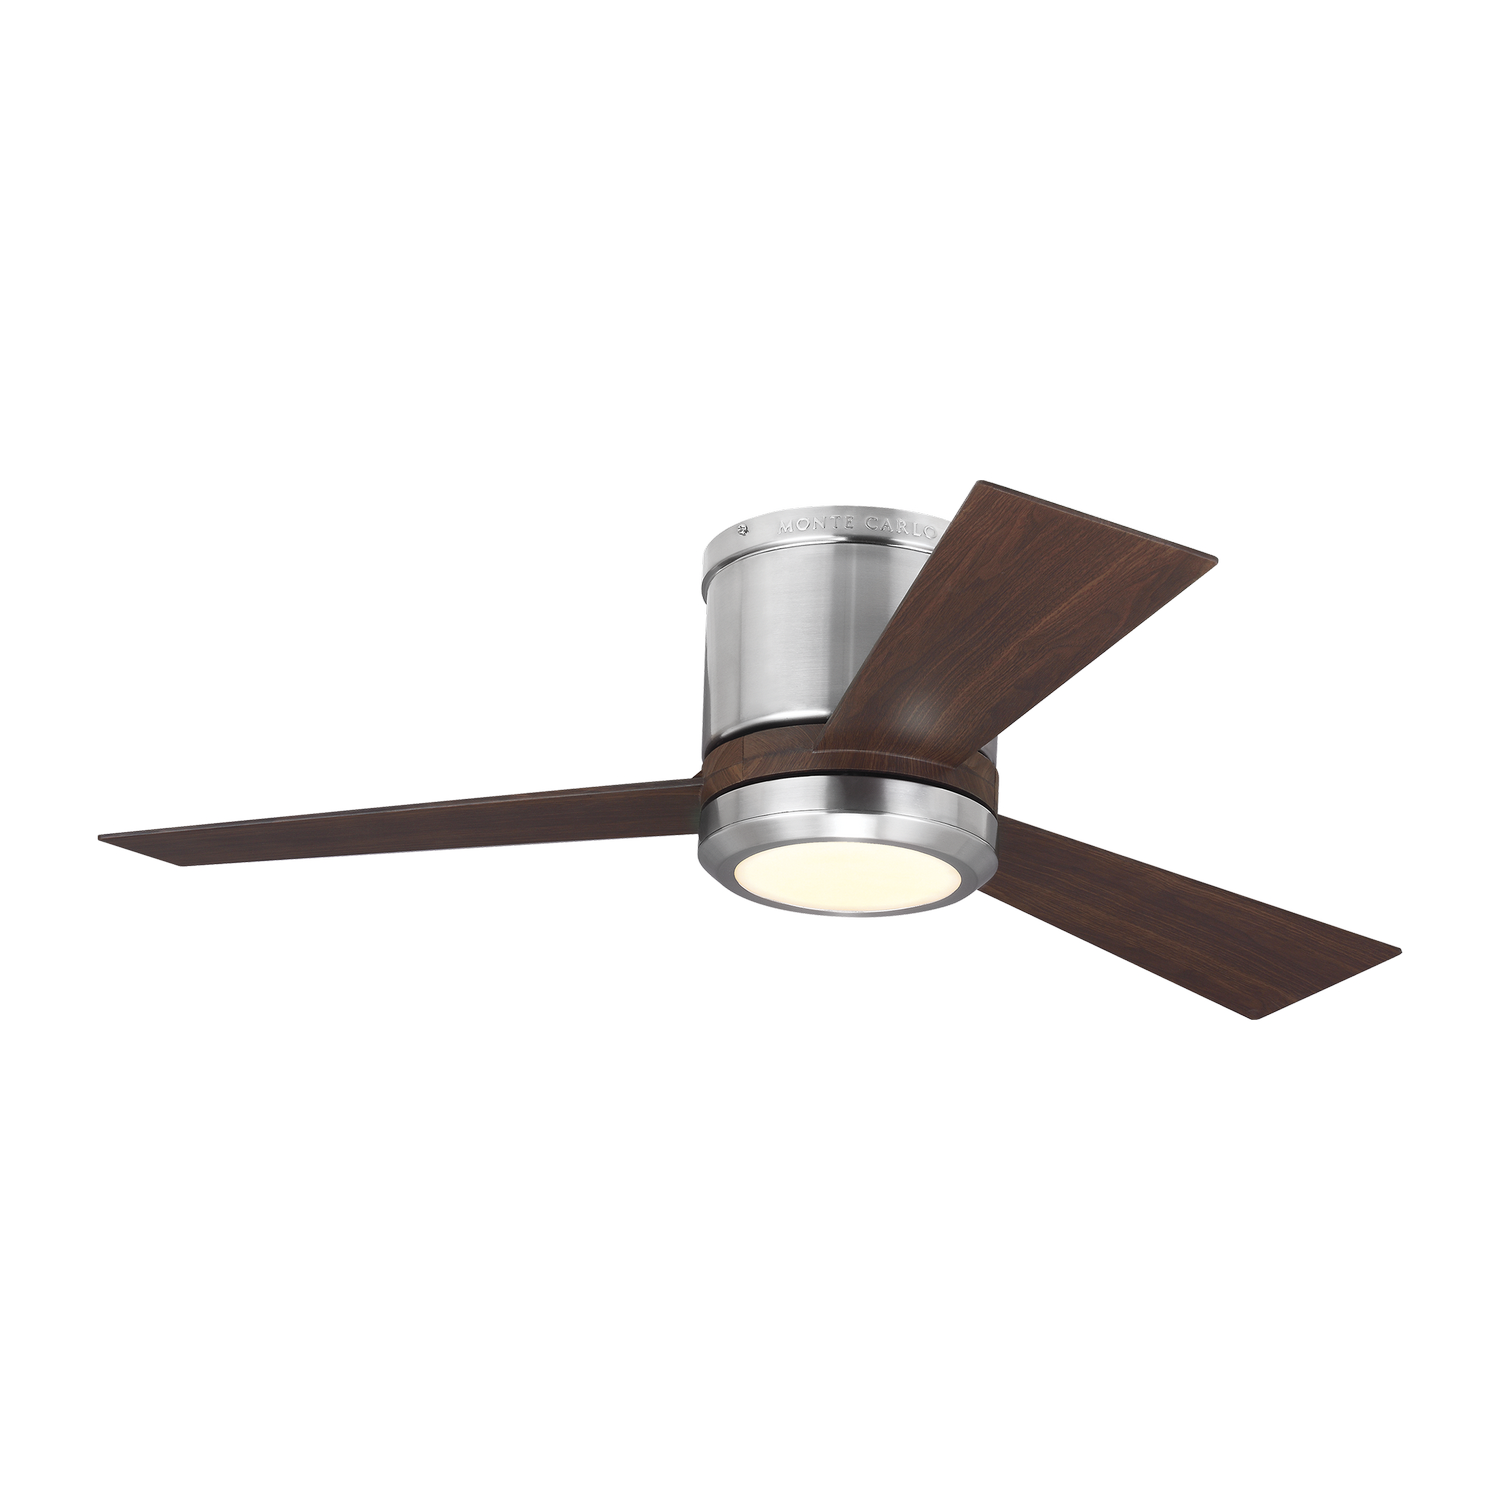 42 inchCeiling Fan from the Clarity II collection by Monte Carlo 3CLYR42BSD V1